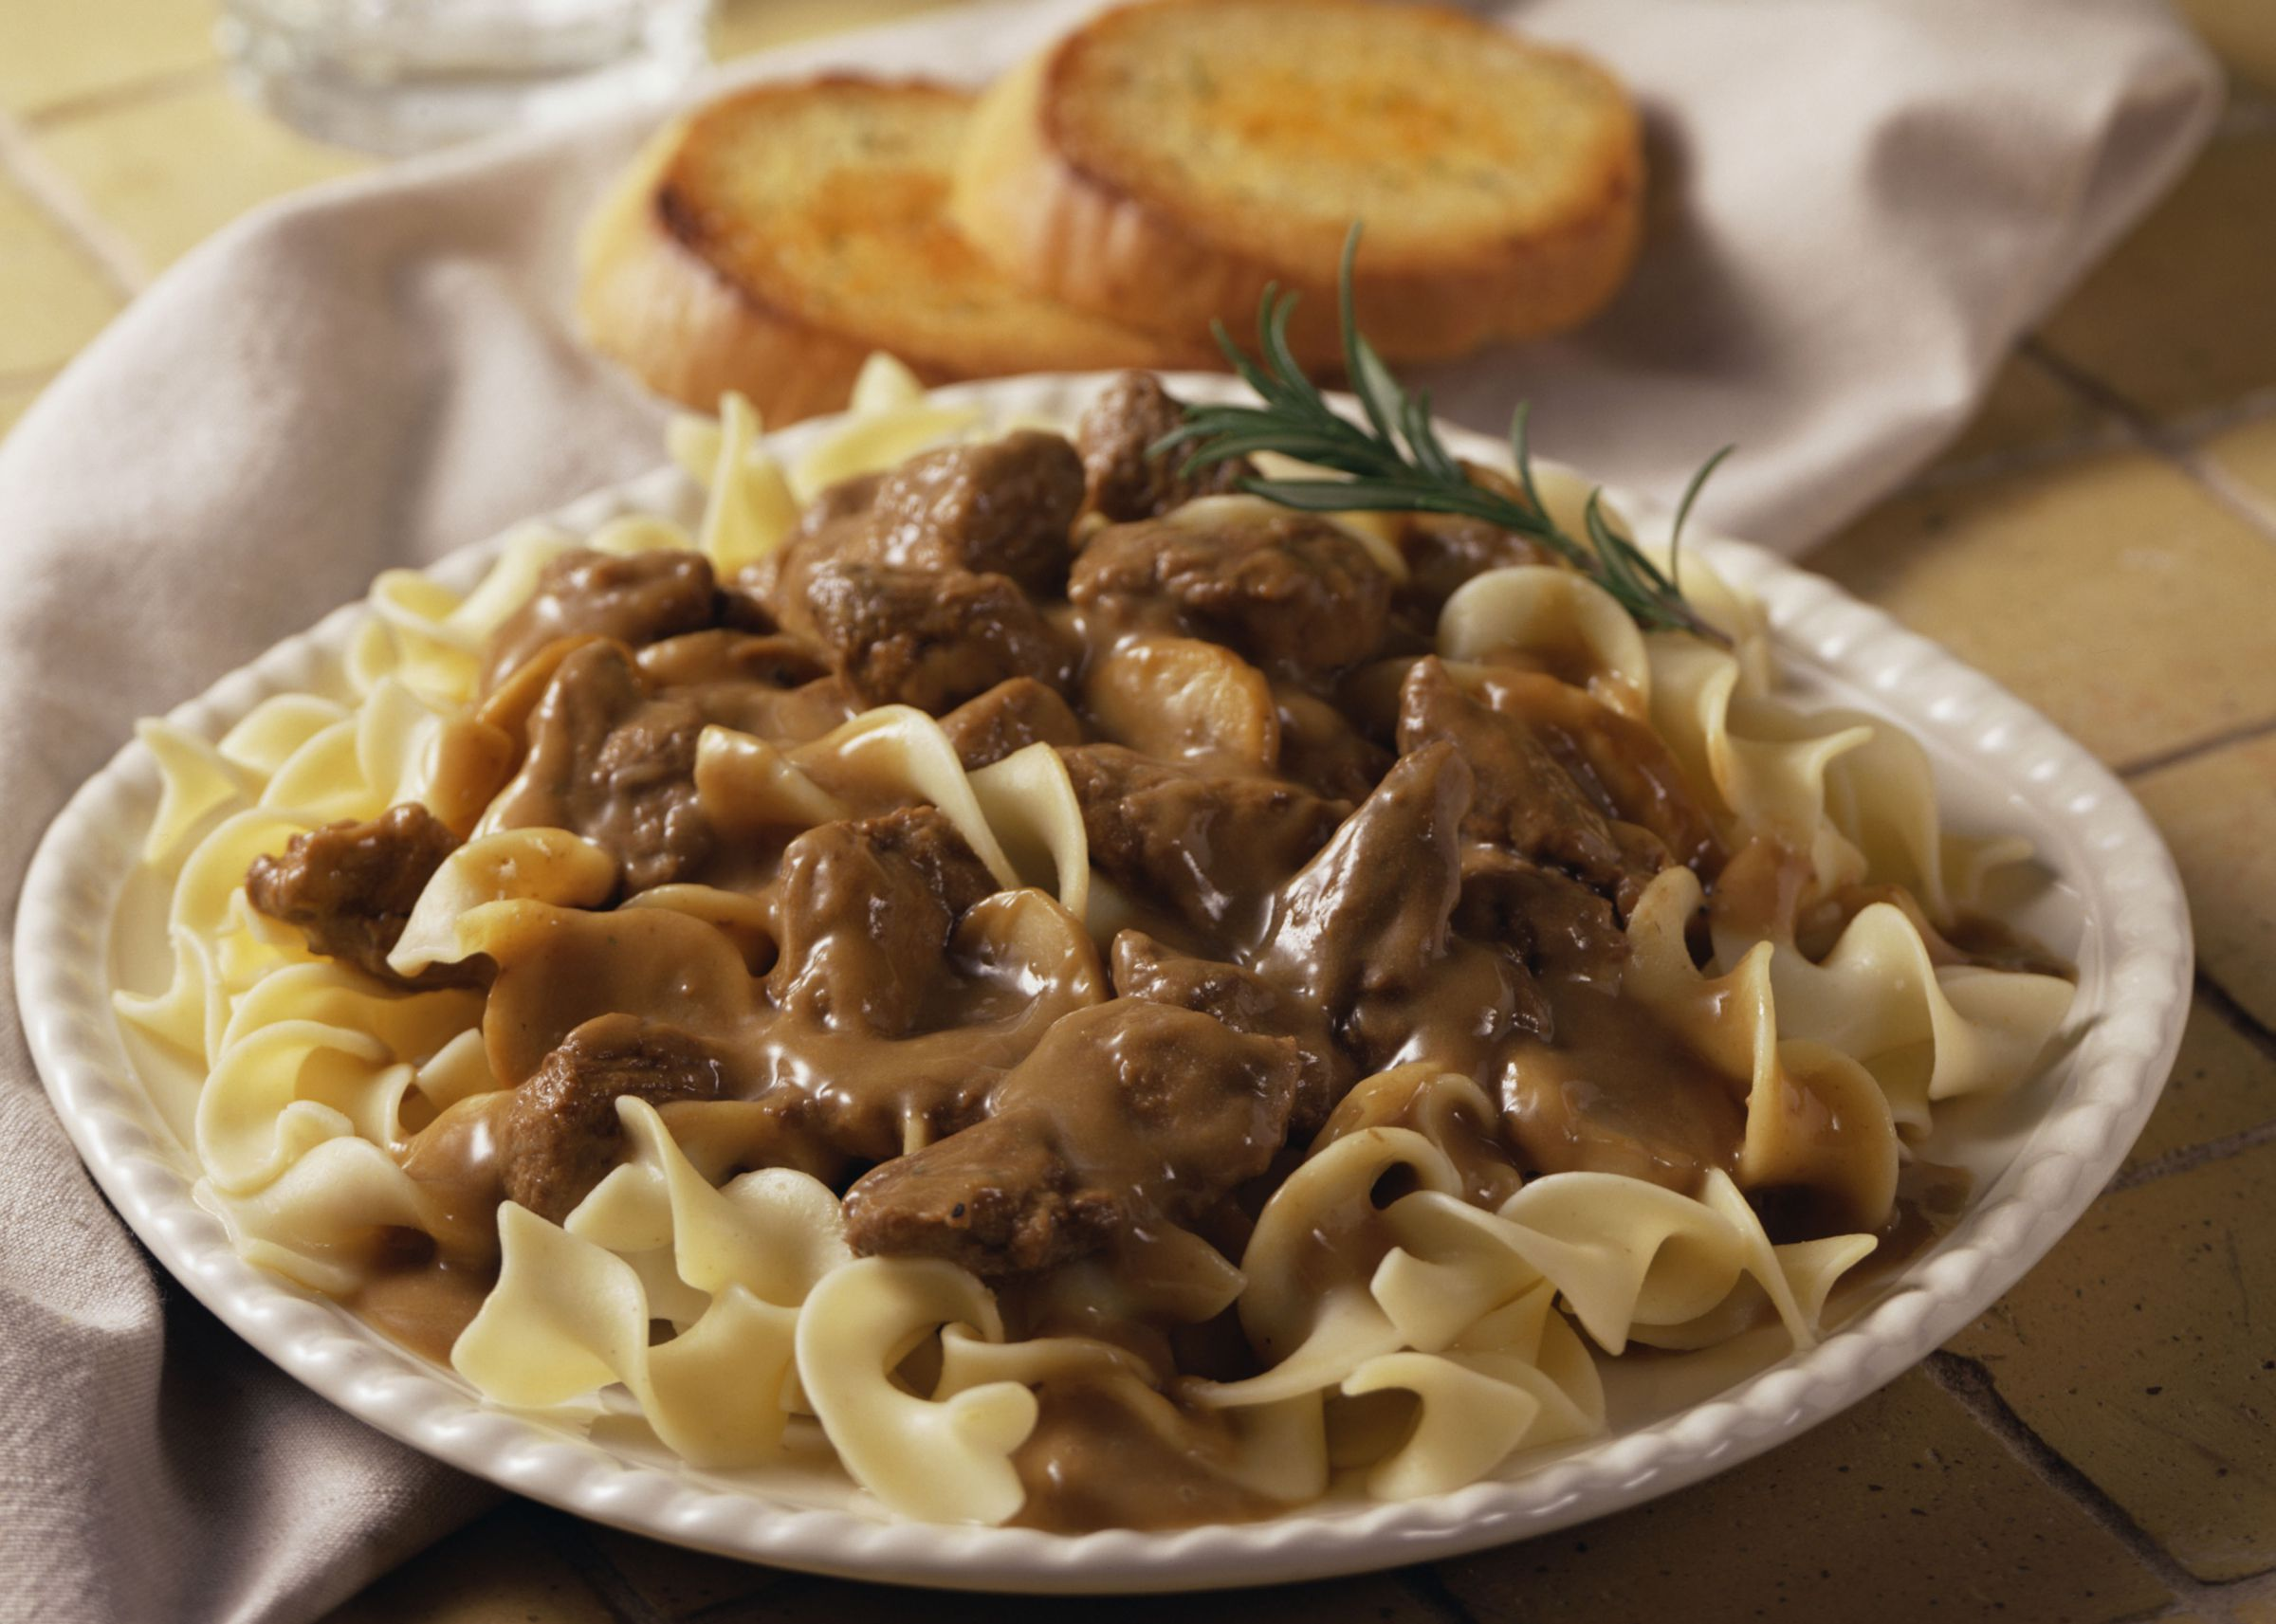 Ground Beef Casserole Recipes For Dinner Cream Of Mushrooms